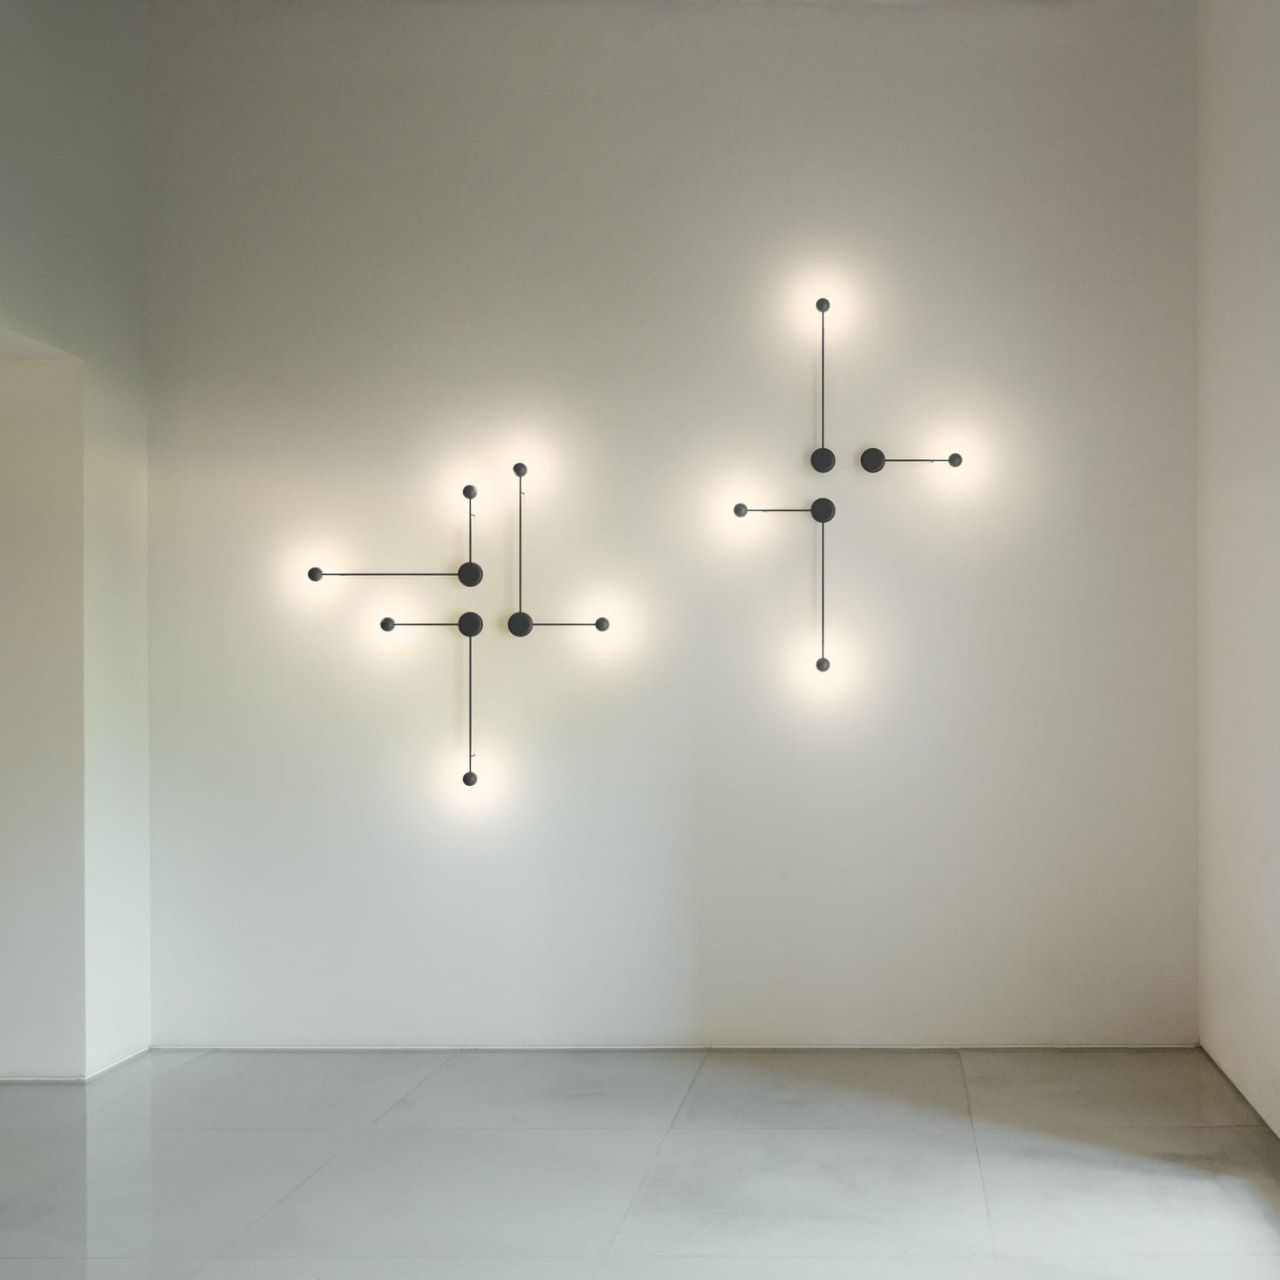 Wall Mounted Ceiling Lights : verde PIN by Ichiro Iwasaki VIBIA? Posted to Souda s Tumblr From the Pinterest Board: Modern ...